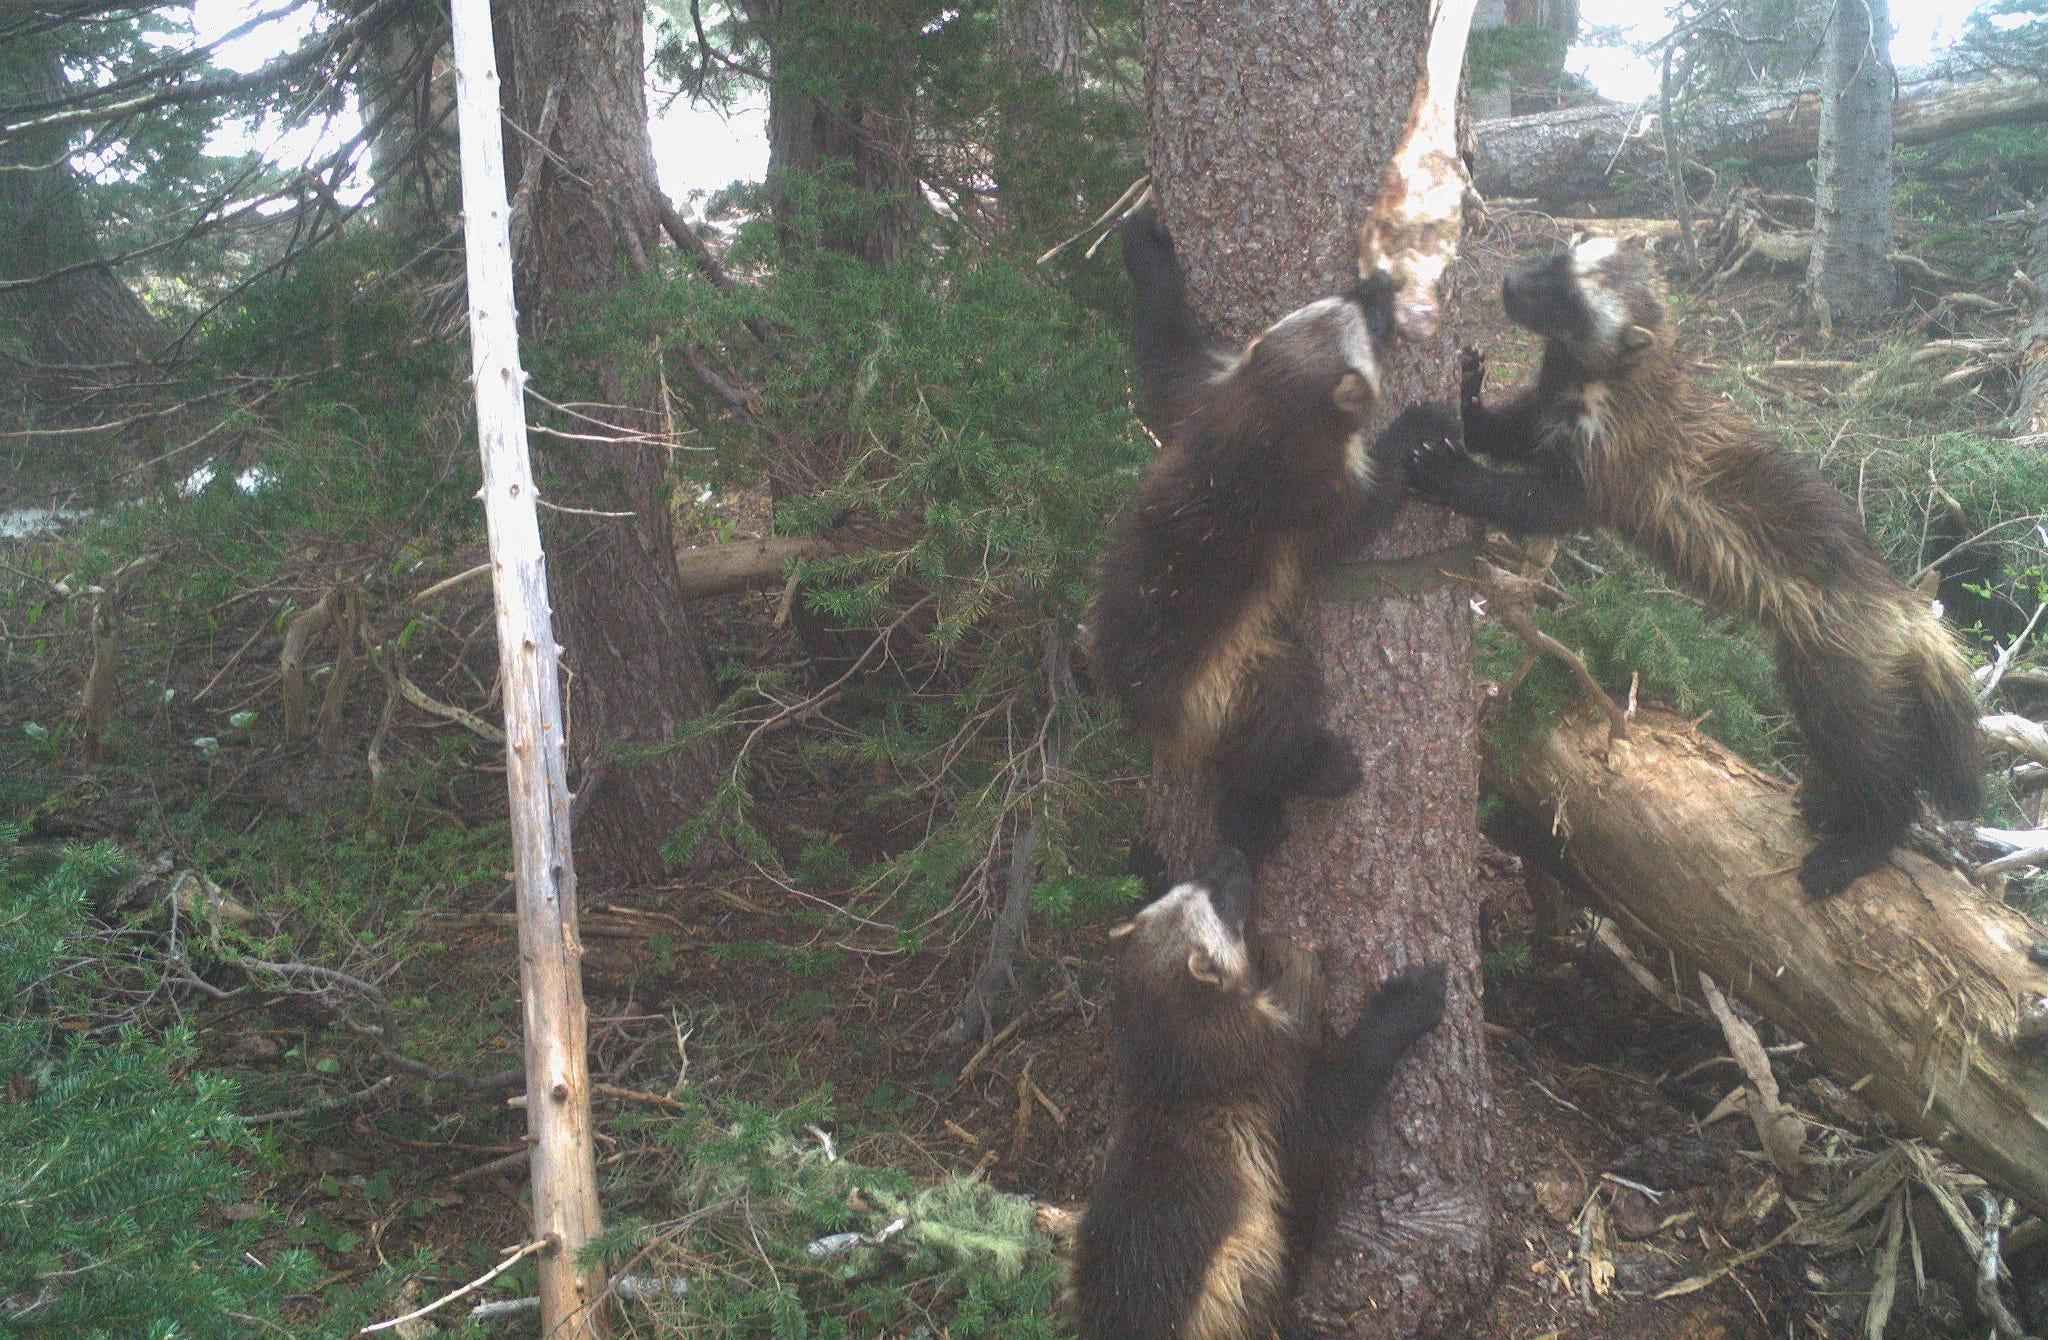 Wolverines spotted at Mount Rainier National Park for the first time in over 100 years